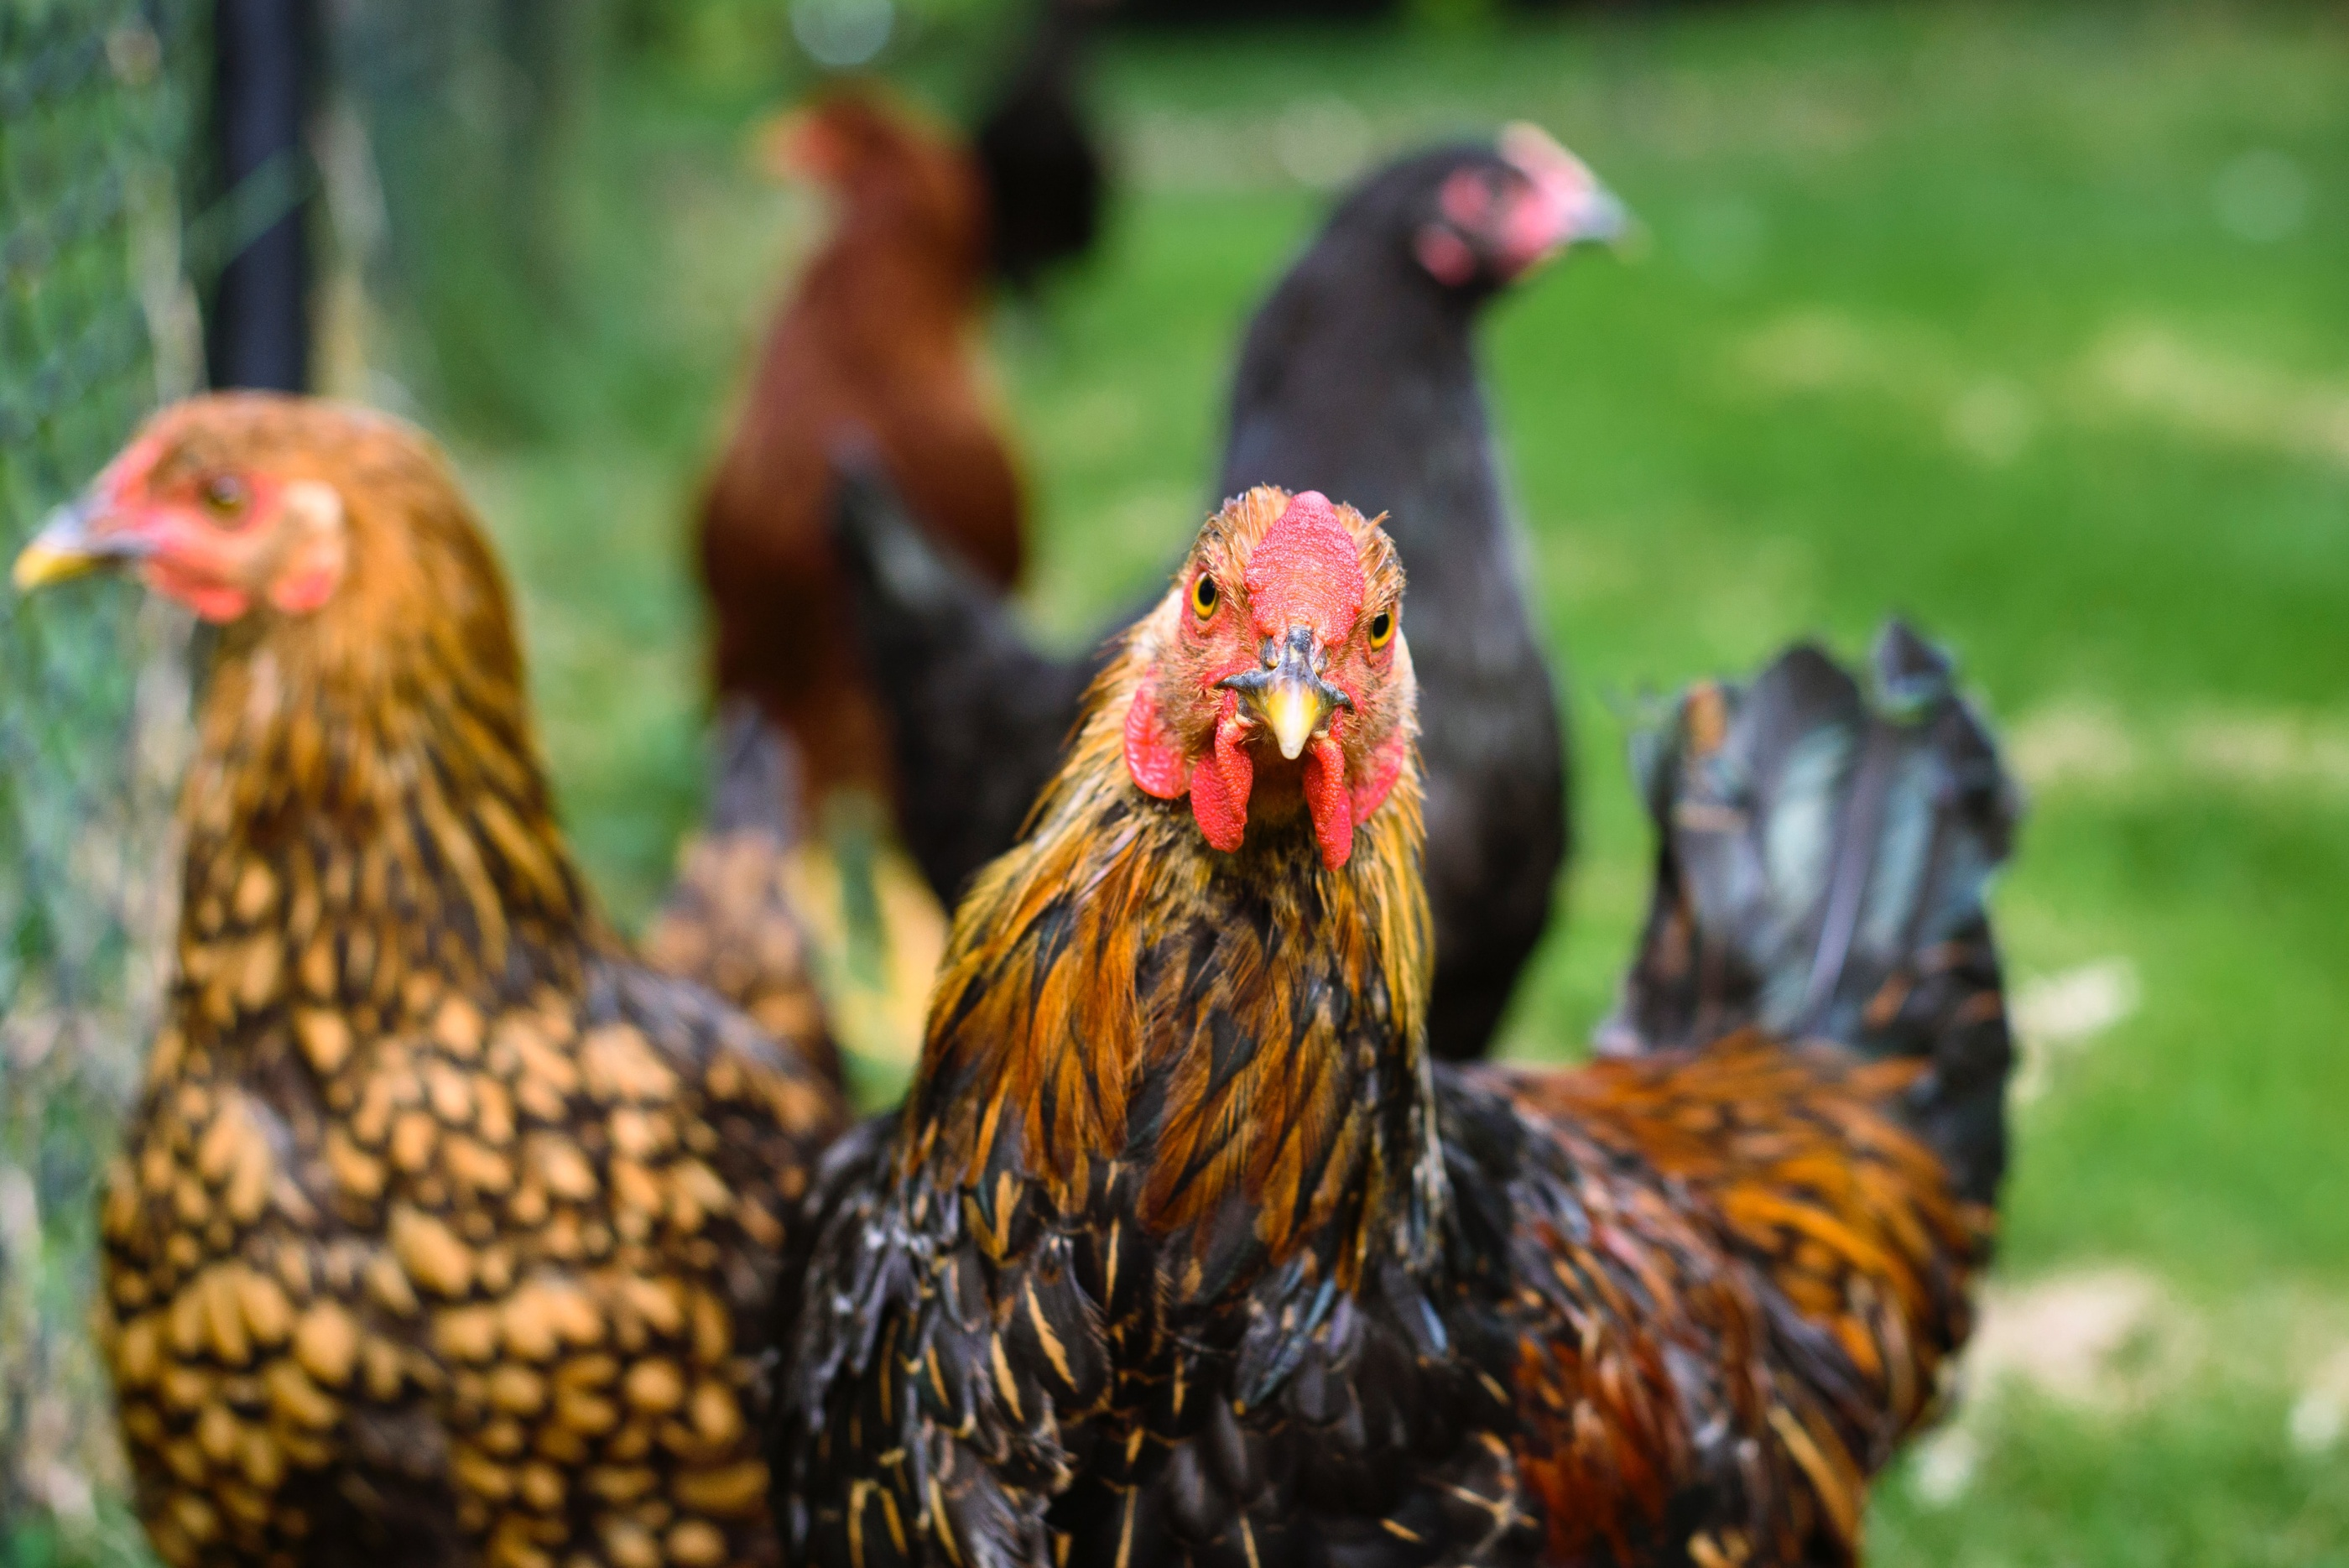 Two roosters are in the center with one staring intently at the camera